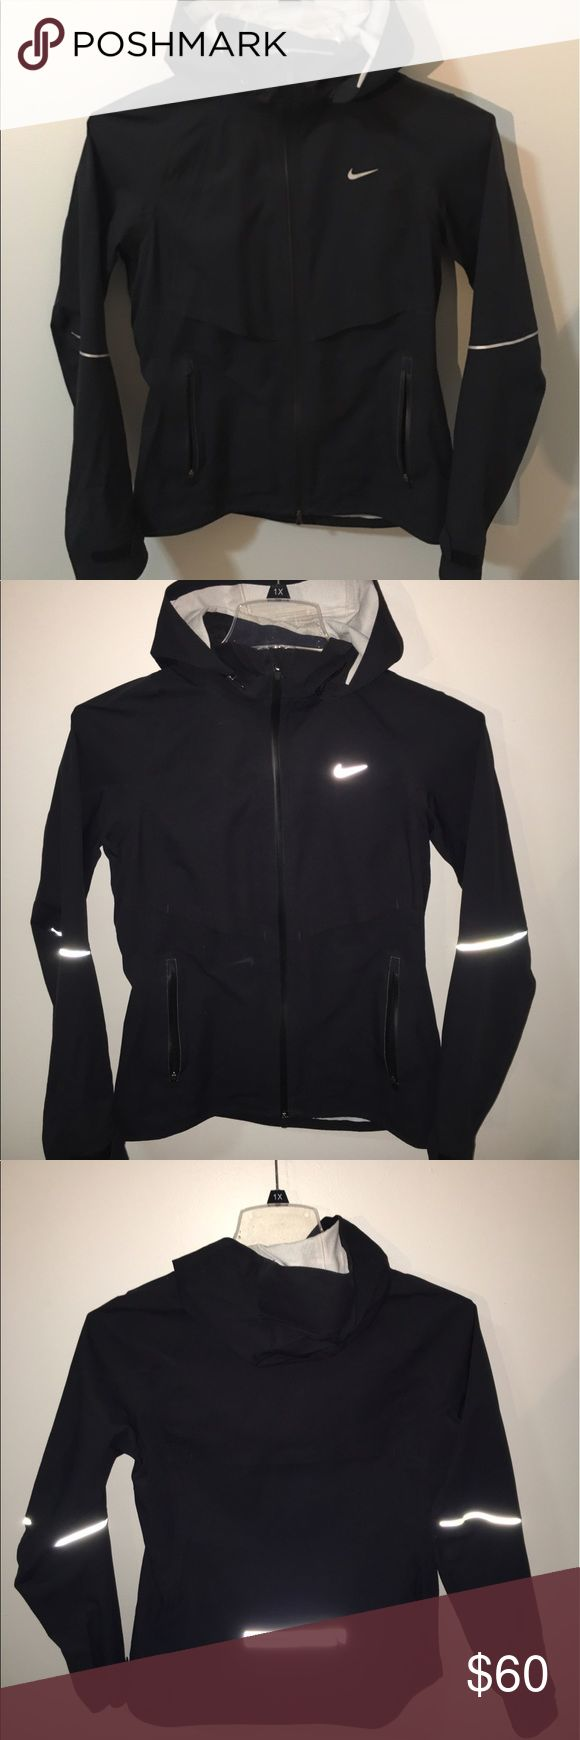 Nike running jacket ✨Nike running jacket✨ light weight running jacket with reflected details that are shown with the flash. It is water resistant but not a rain jacket. Please feel free to make an offer! Nike Jackets & Coats